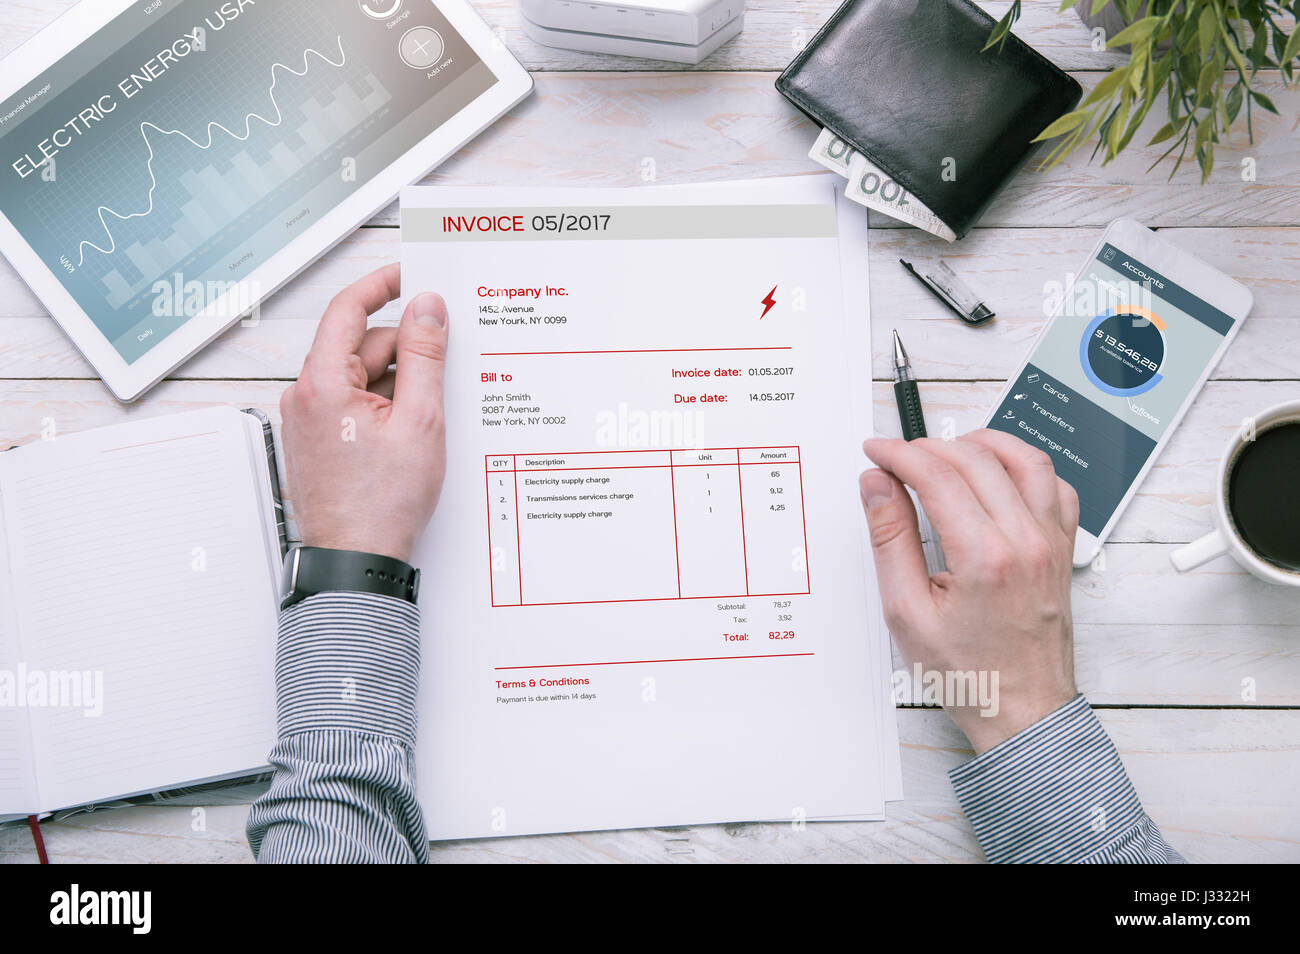 Man holds invoice of electric power usage over desk with tablet and smartphone with applications made in graphic Stock Photo